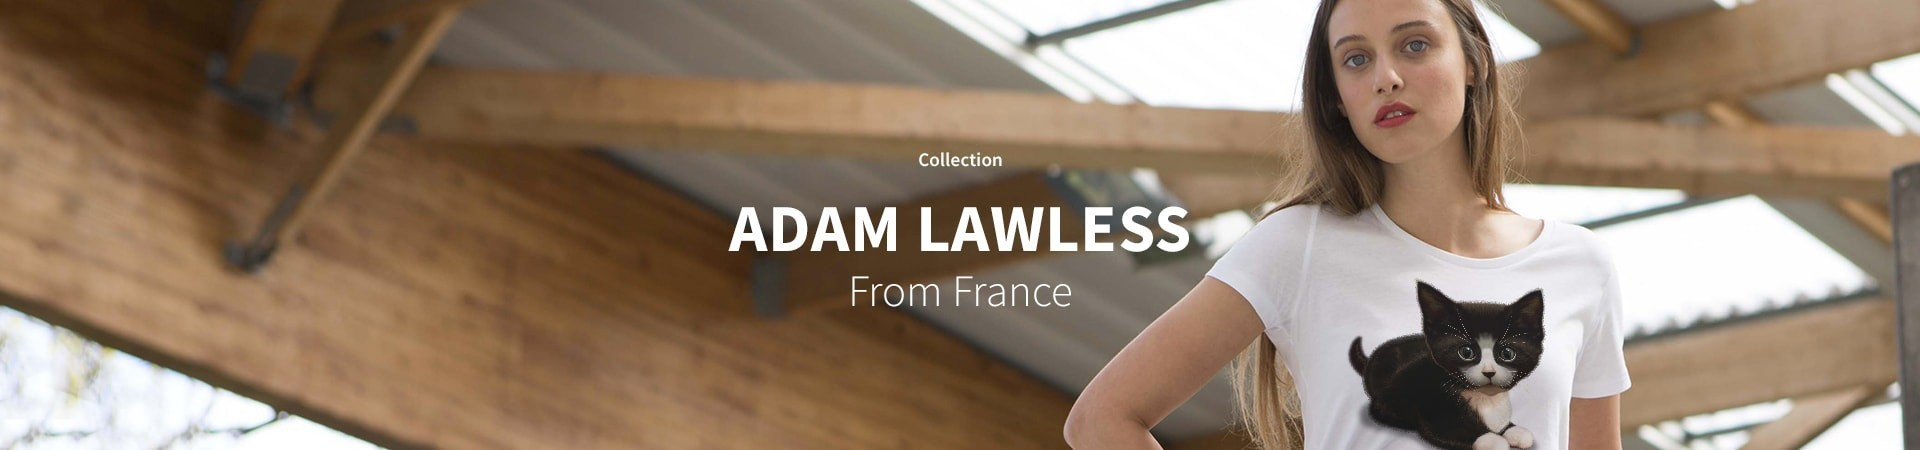 Adam Lawless